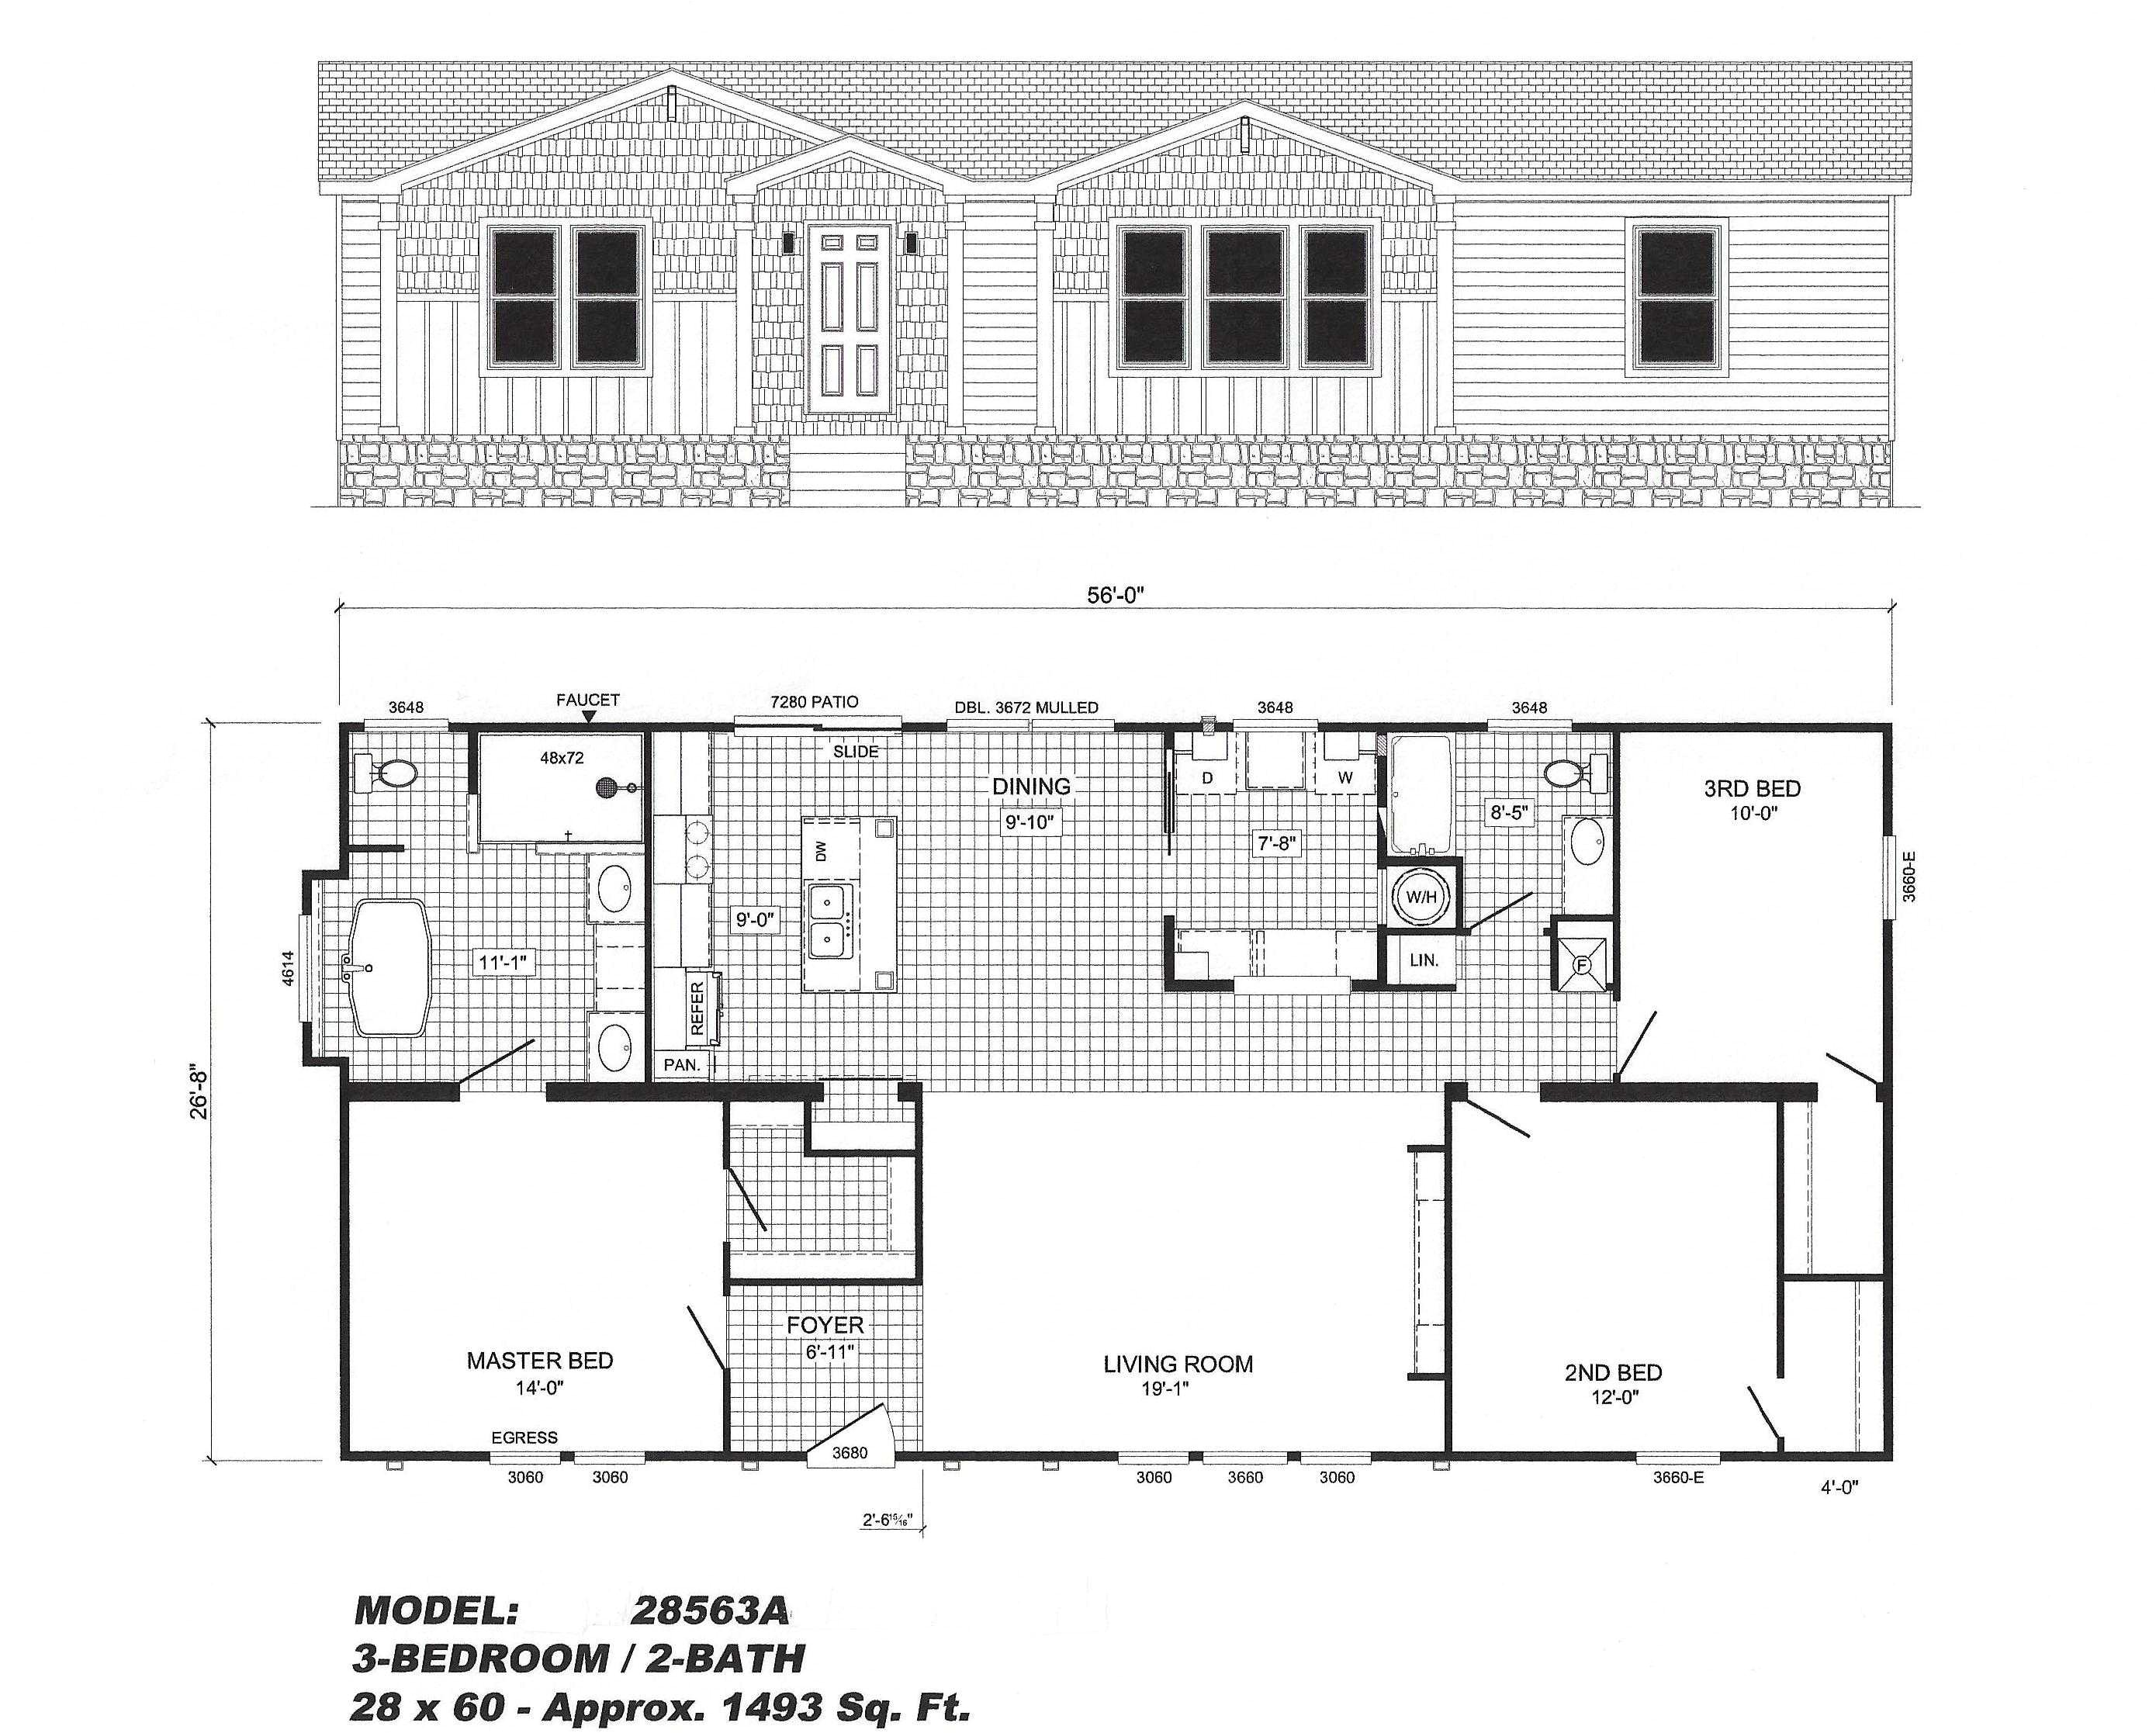 3 bedroom modular home floor plans pictures gallery also plan pat hawks homes and charming price 2018